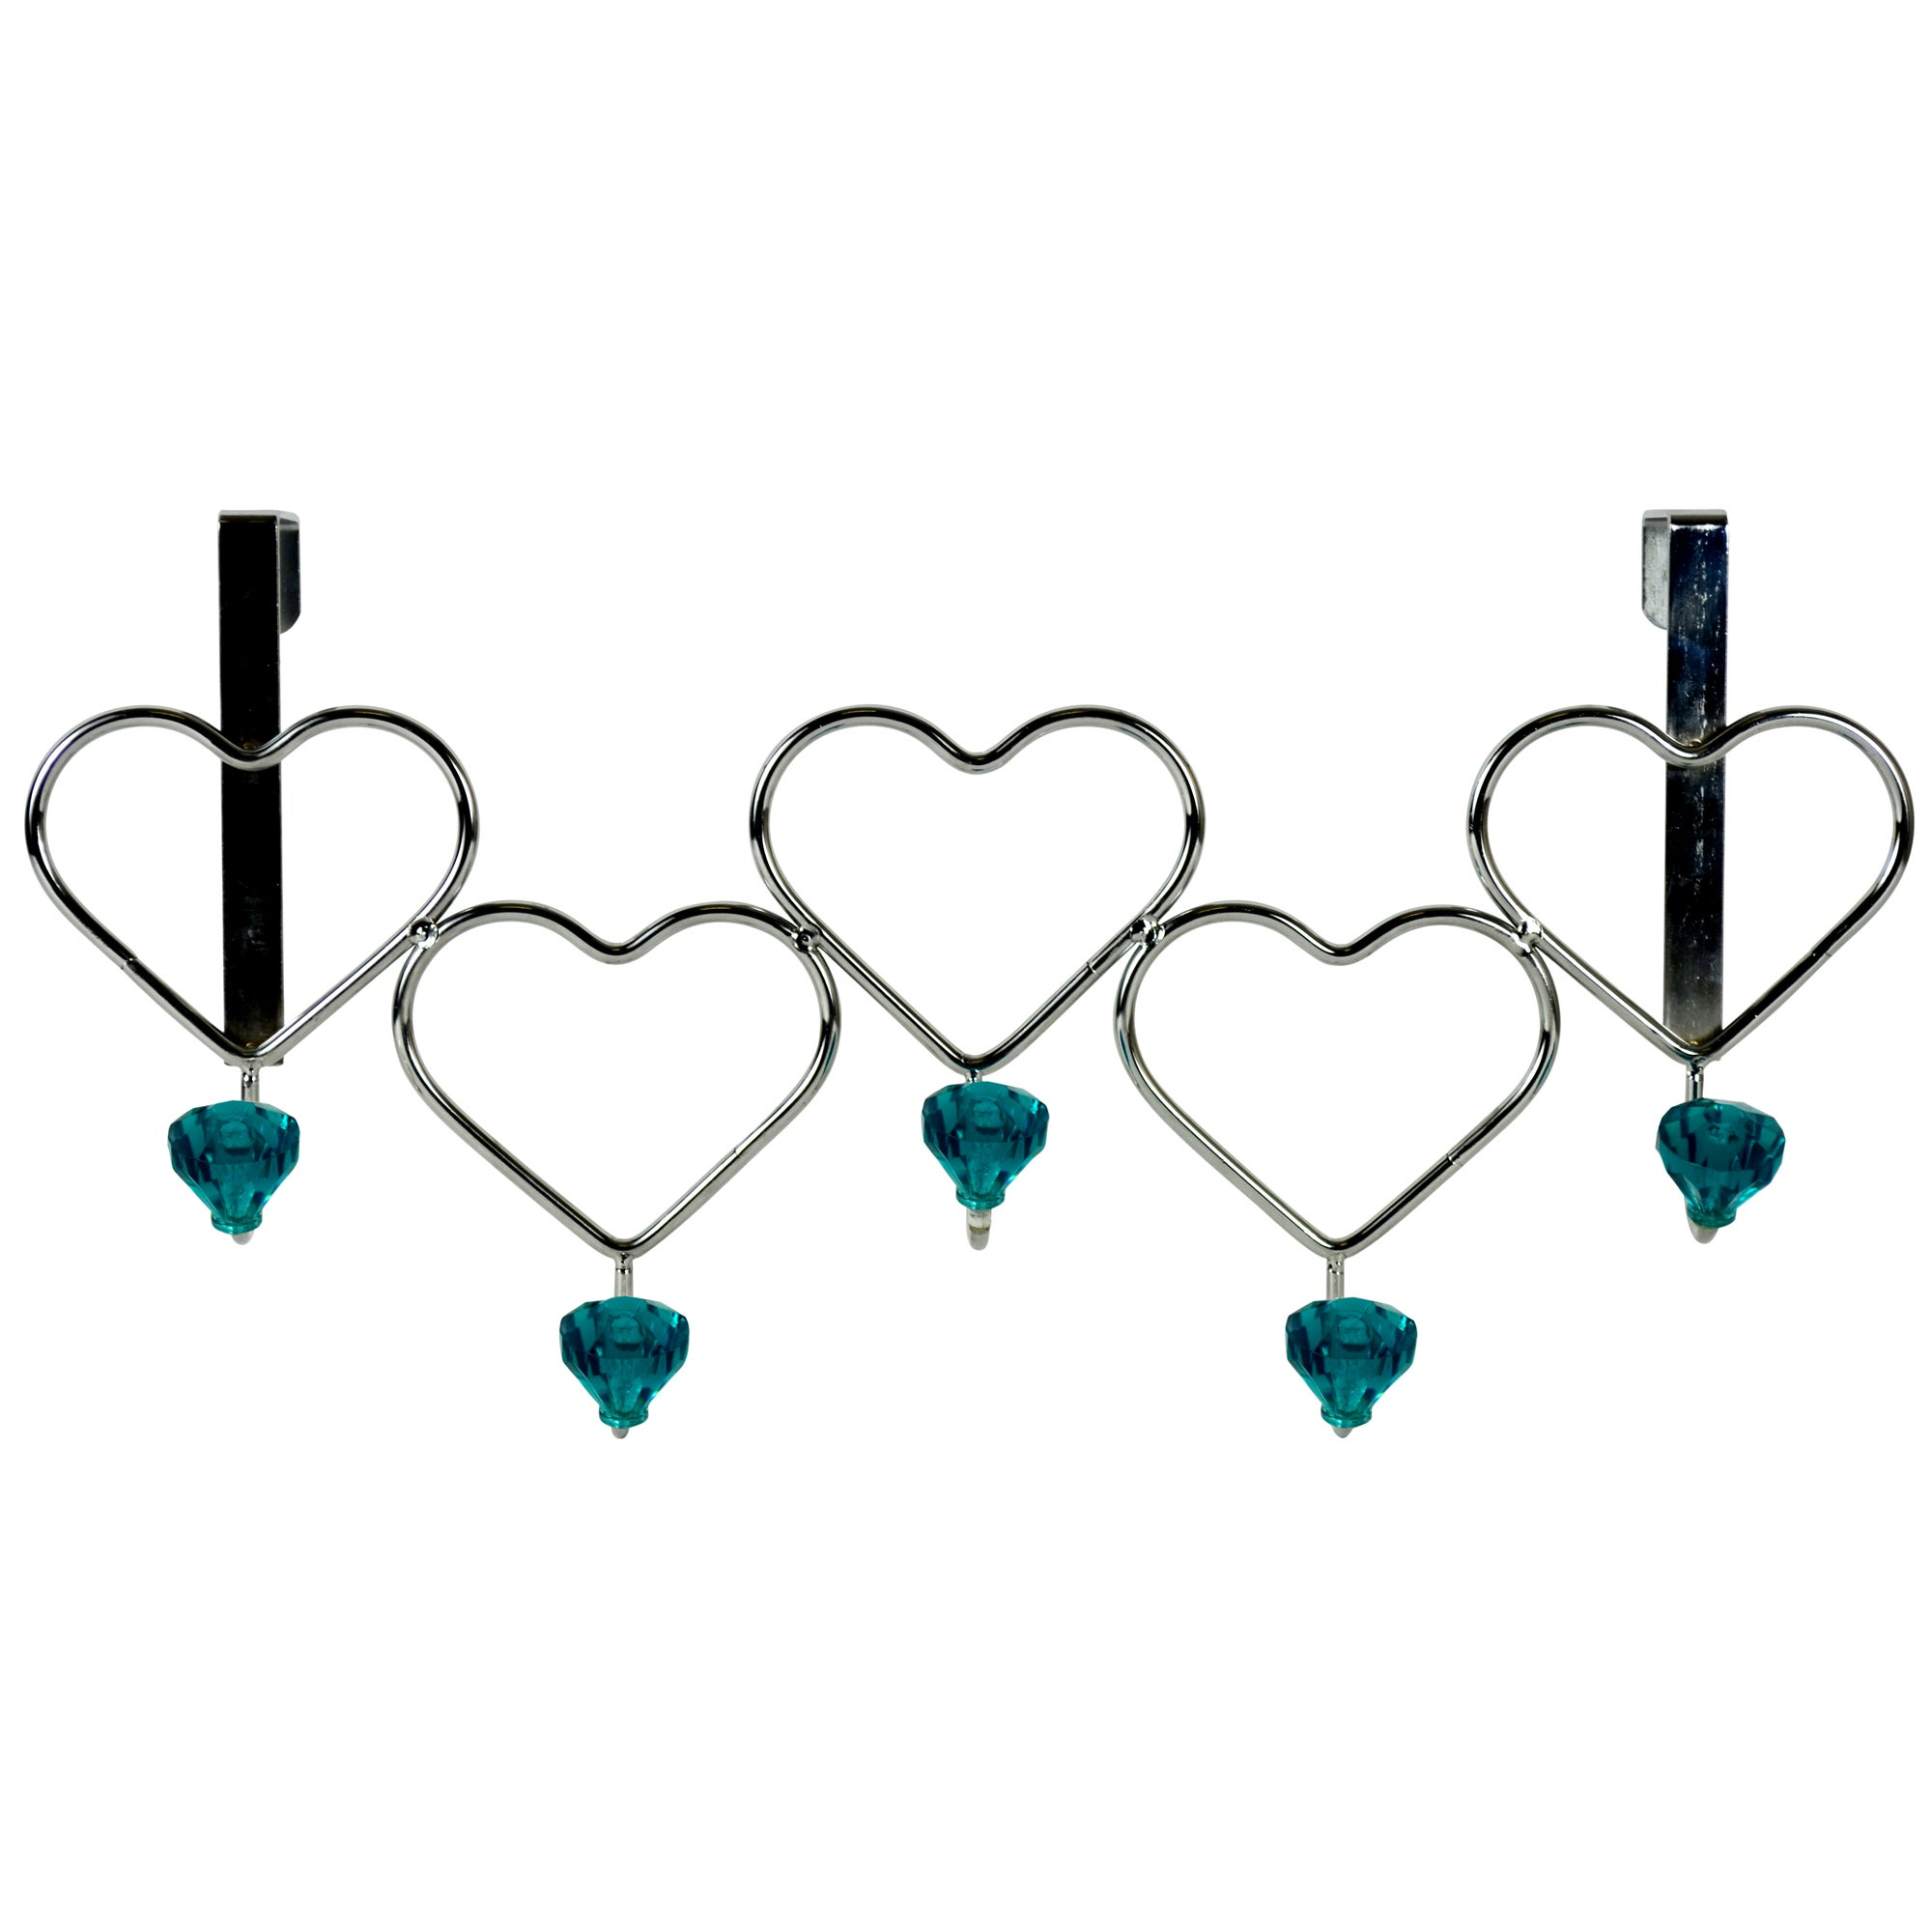 Jewel Heart Over the Door Hooks